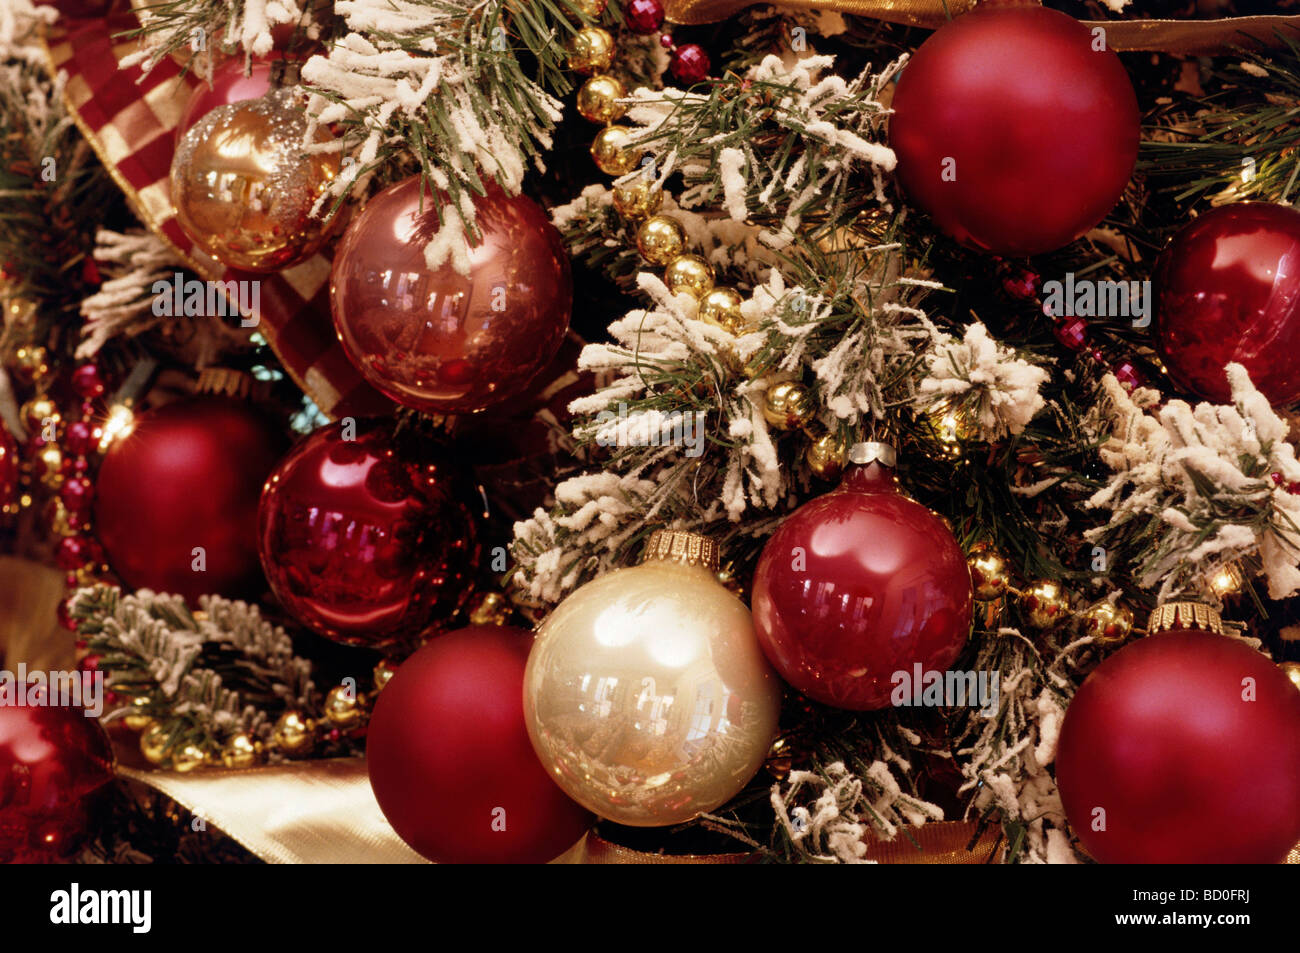 christmas ornaments on a snowy tree stock image - Large Christmas Tree Ornaments